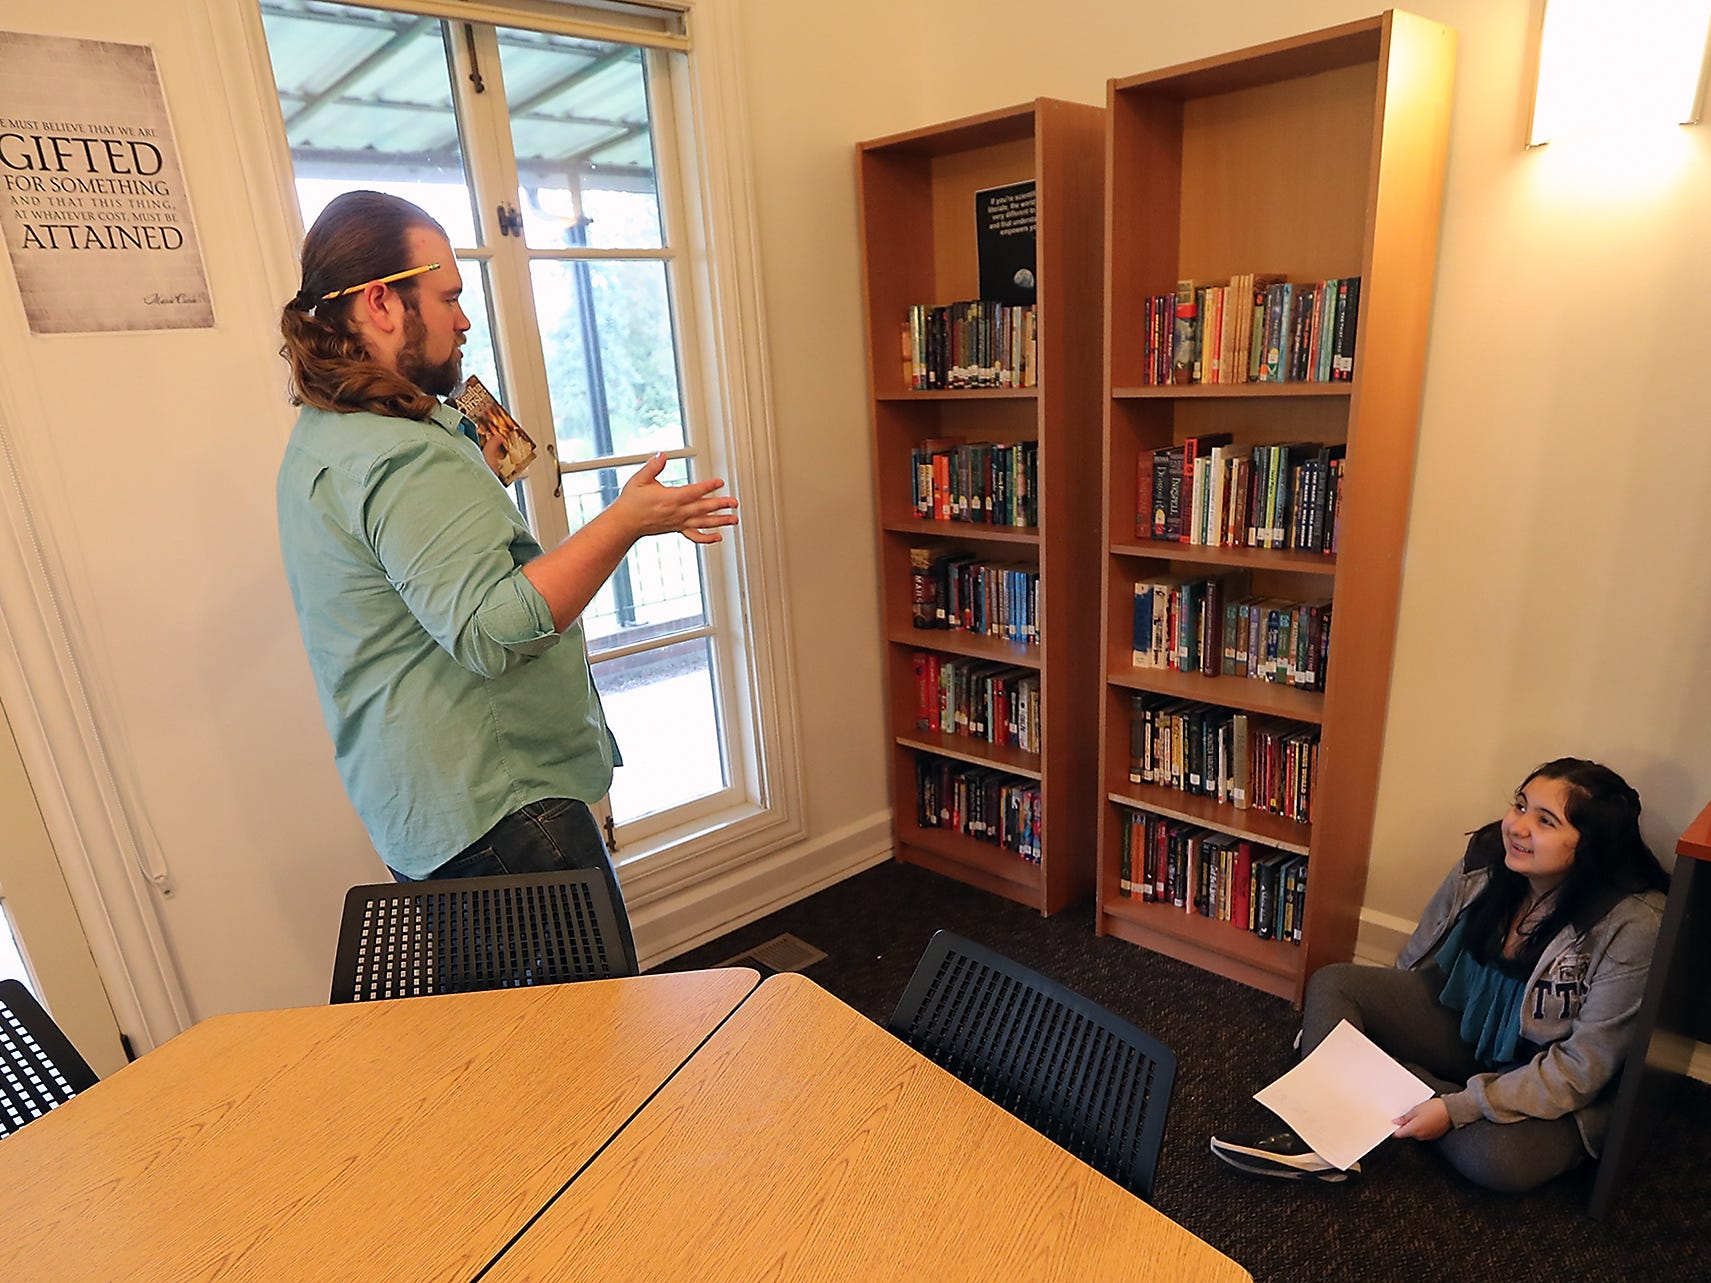 While looking over her class schedule, student Jewelian Lawrence, 14, chats with Language Arts teacher Hank Hayden as he organizes the bookshelves in his classroom during the Chief Kitsap Academy open house at their new campus in Poulsbo on Thursday, August 30, 2018.